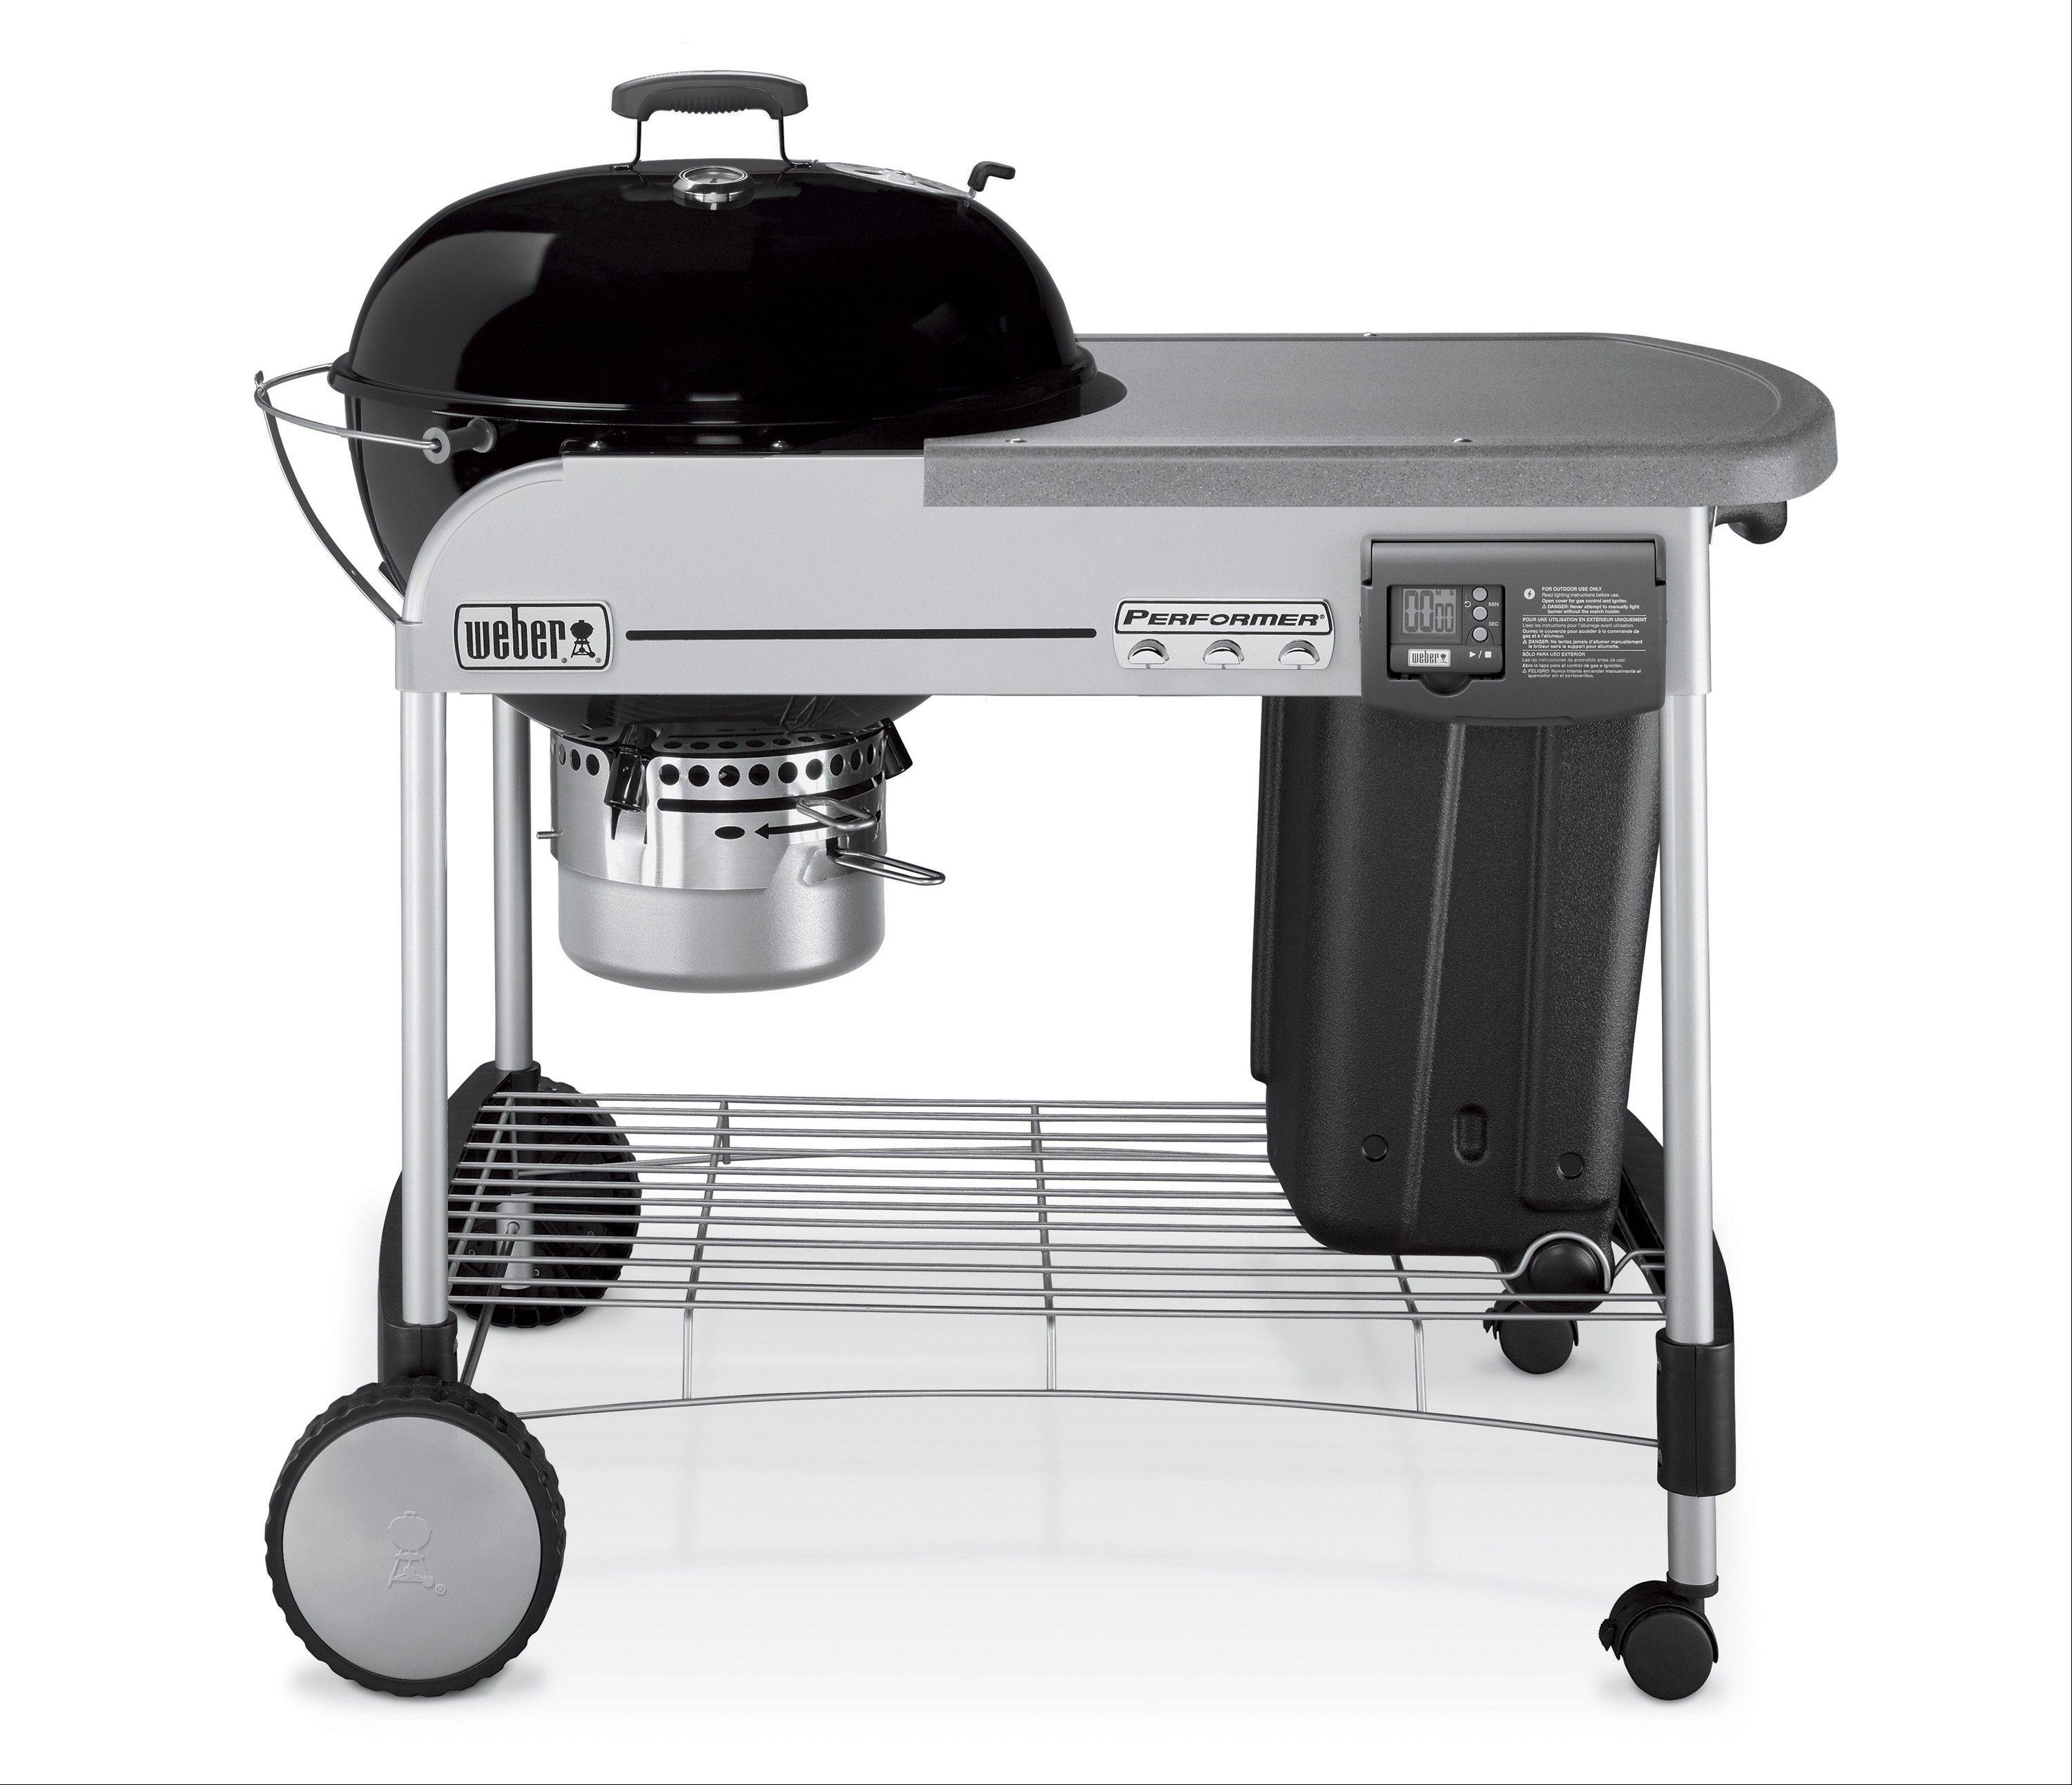 After judging seven grills on nine features, product testers with Cook�s Illustrated magazine gave Weber�s Performer Platinum Charcoal Grill its highest rating.